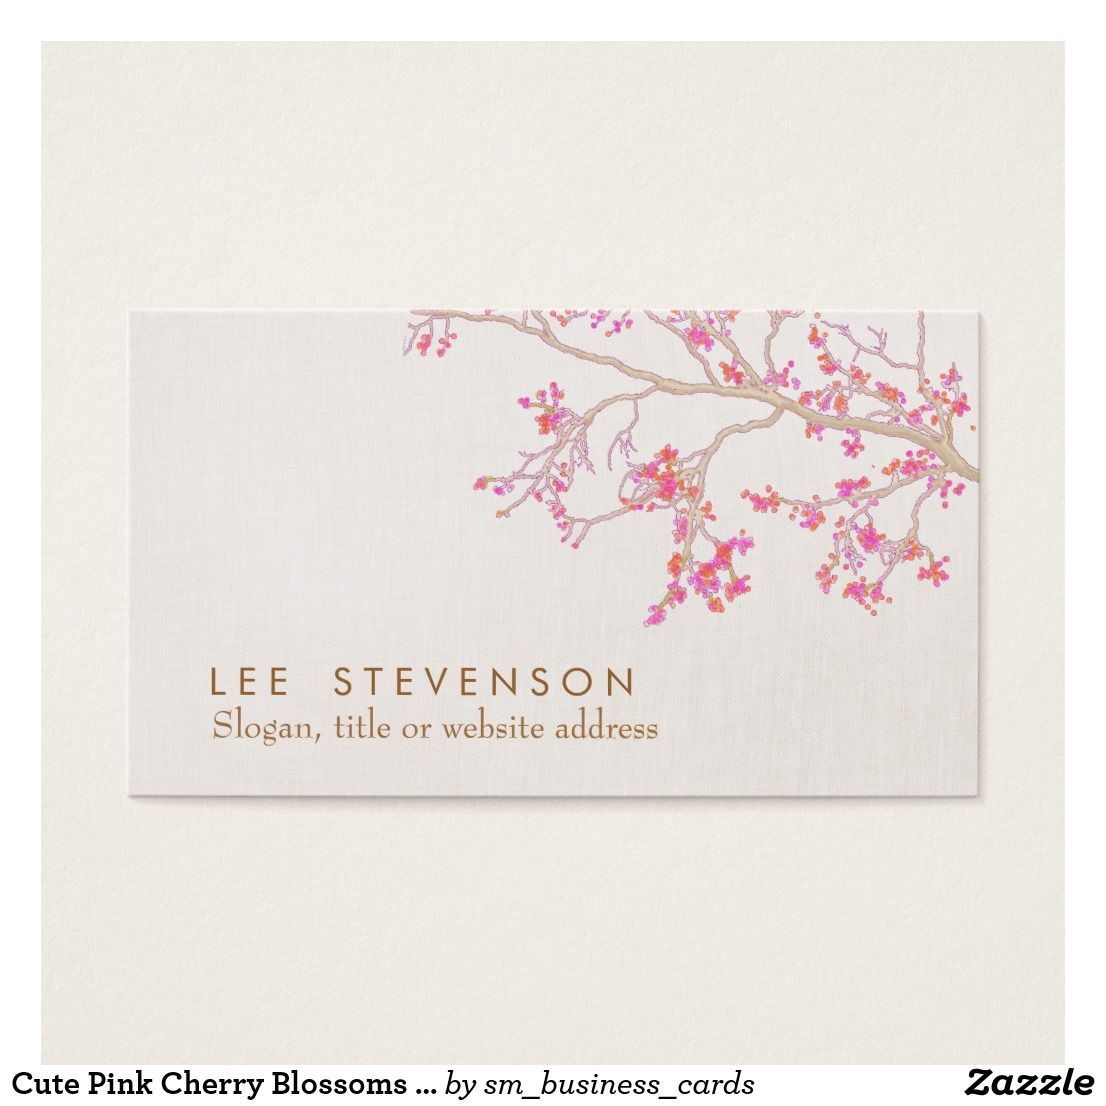 Cute Pink Cherry Blossoms Floral Nature Business Card | Pinterest ...